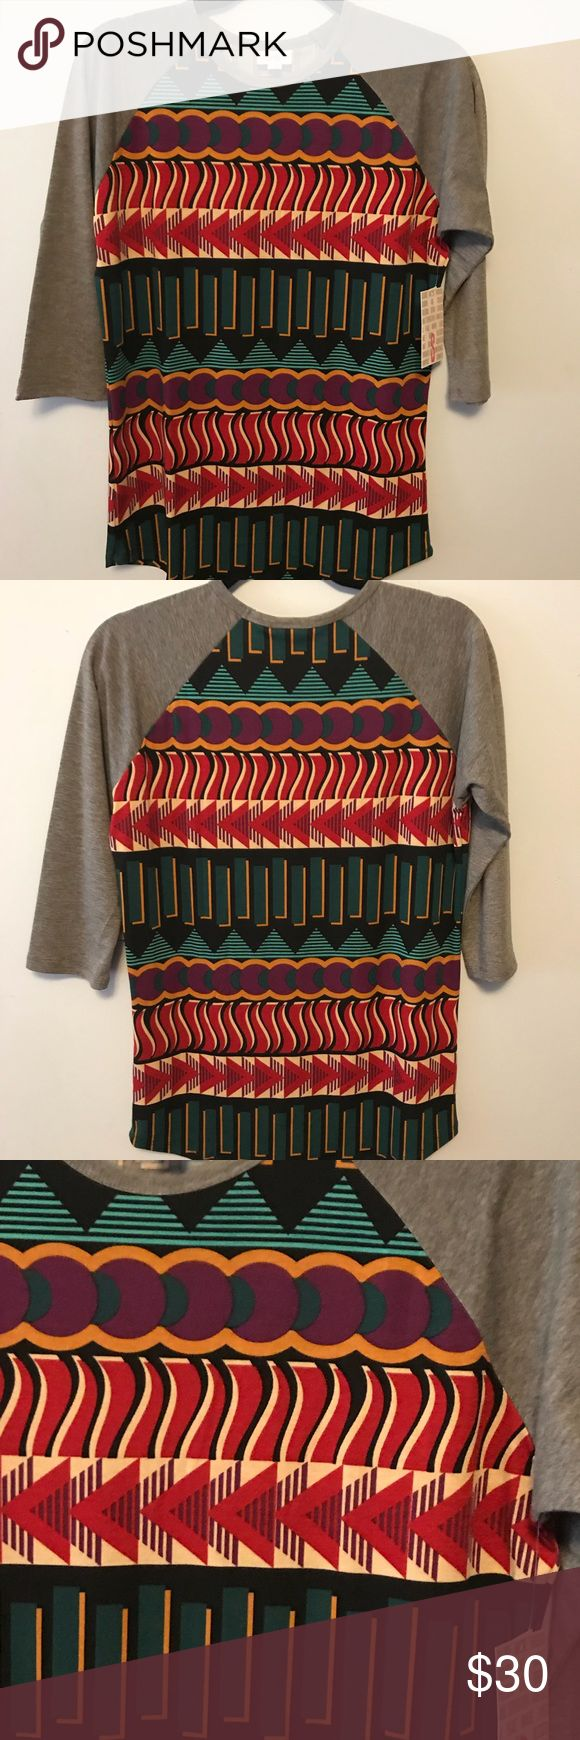 LuLaRoe Randy At LuLaRoe, comfort is key and we often liken our dresses and skirts to a simple t-shirt in terms of their wearability and comfort. With LuLaRoe's Randy shirt, we have a t-shirt to offer. This unisex knit shirt resembles a baseball T with its raglan, mid-length sleeves in a contrasting, patterned fabric. It is everything a t-shirt should be: stylish, easy, and comfortable. LuLaRoe Tops Tunics